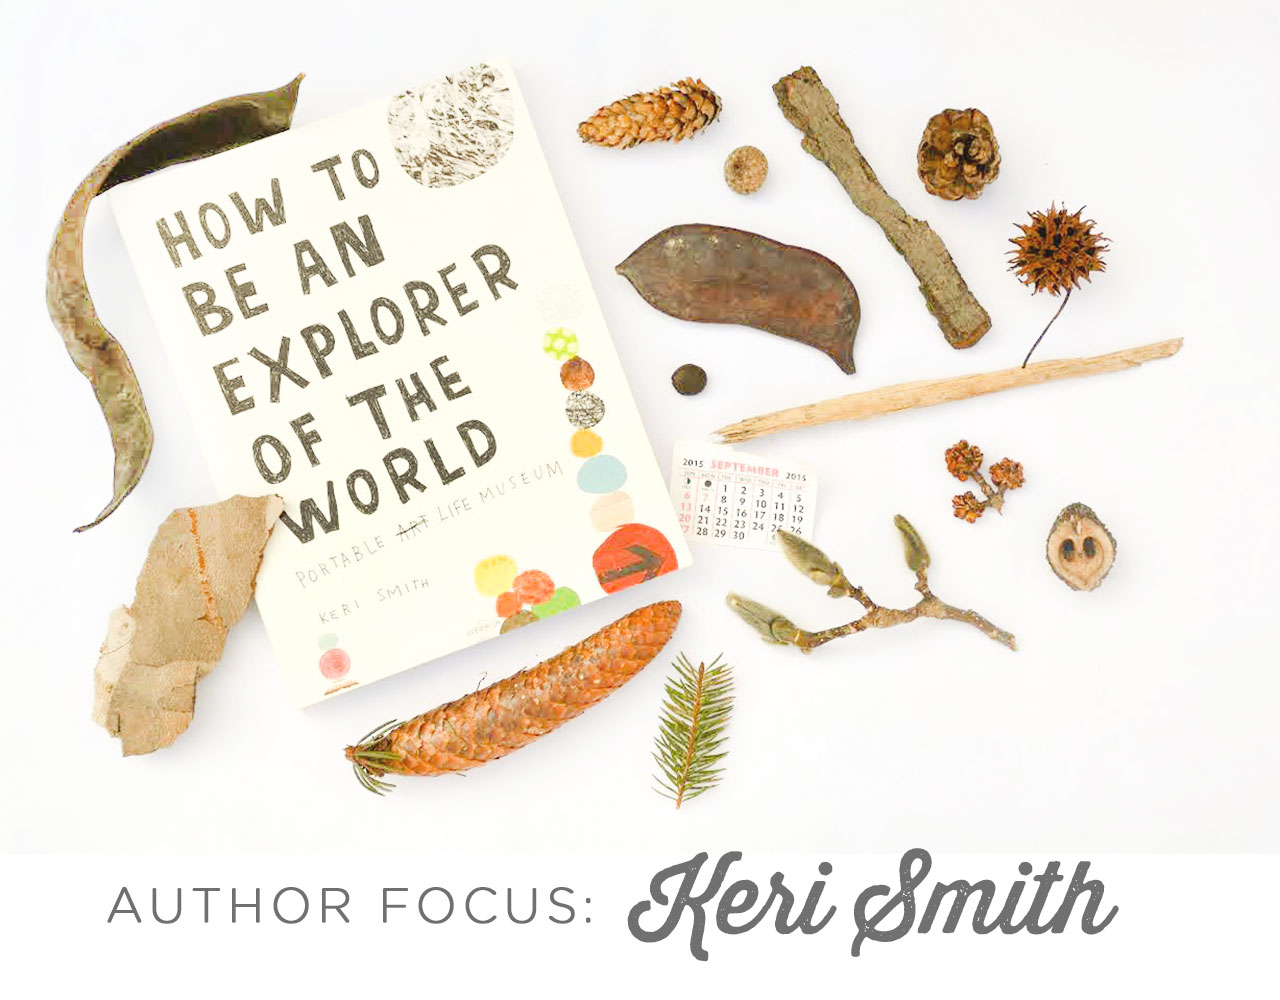 Author Focus: Keri Smith